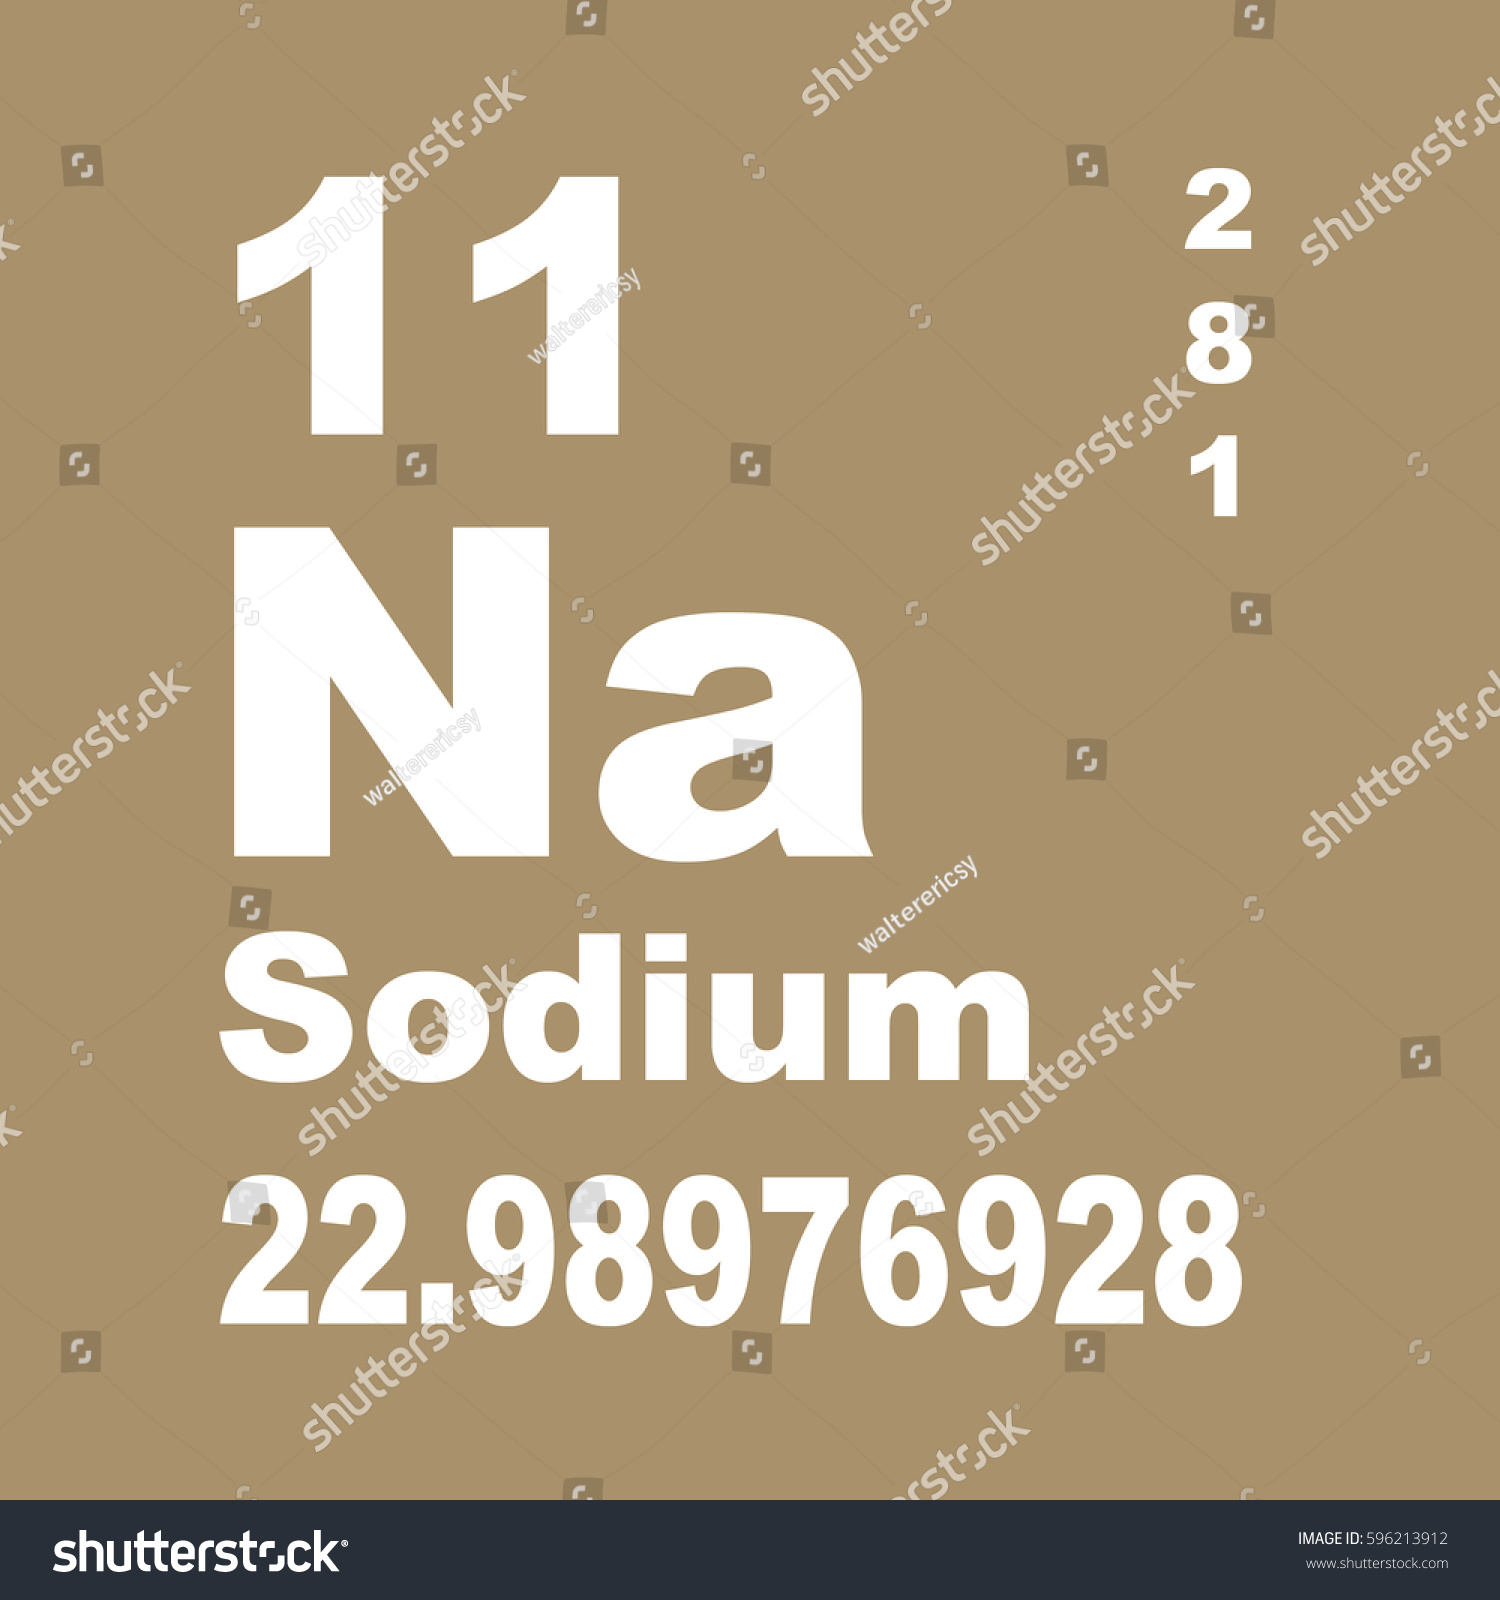 Sodium periodic table elements stock illustration 596213912 sodium periodic table of elements gamestrikefo Images